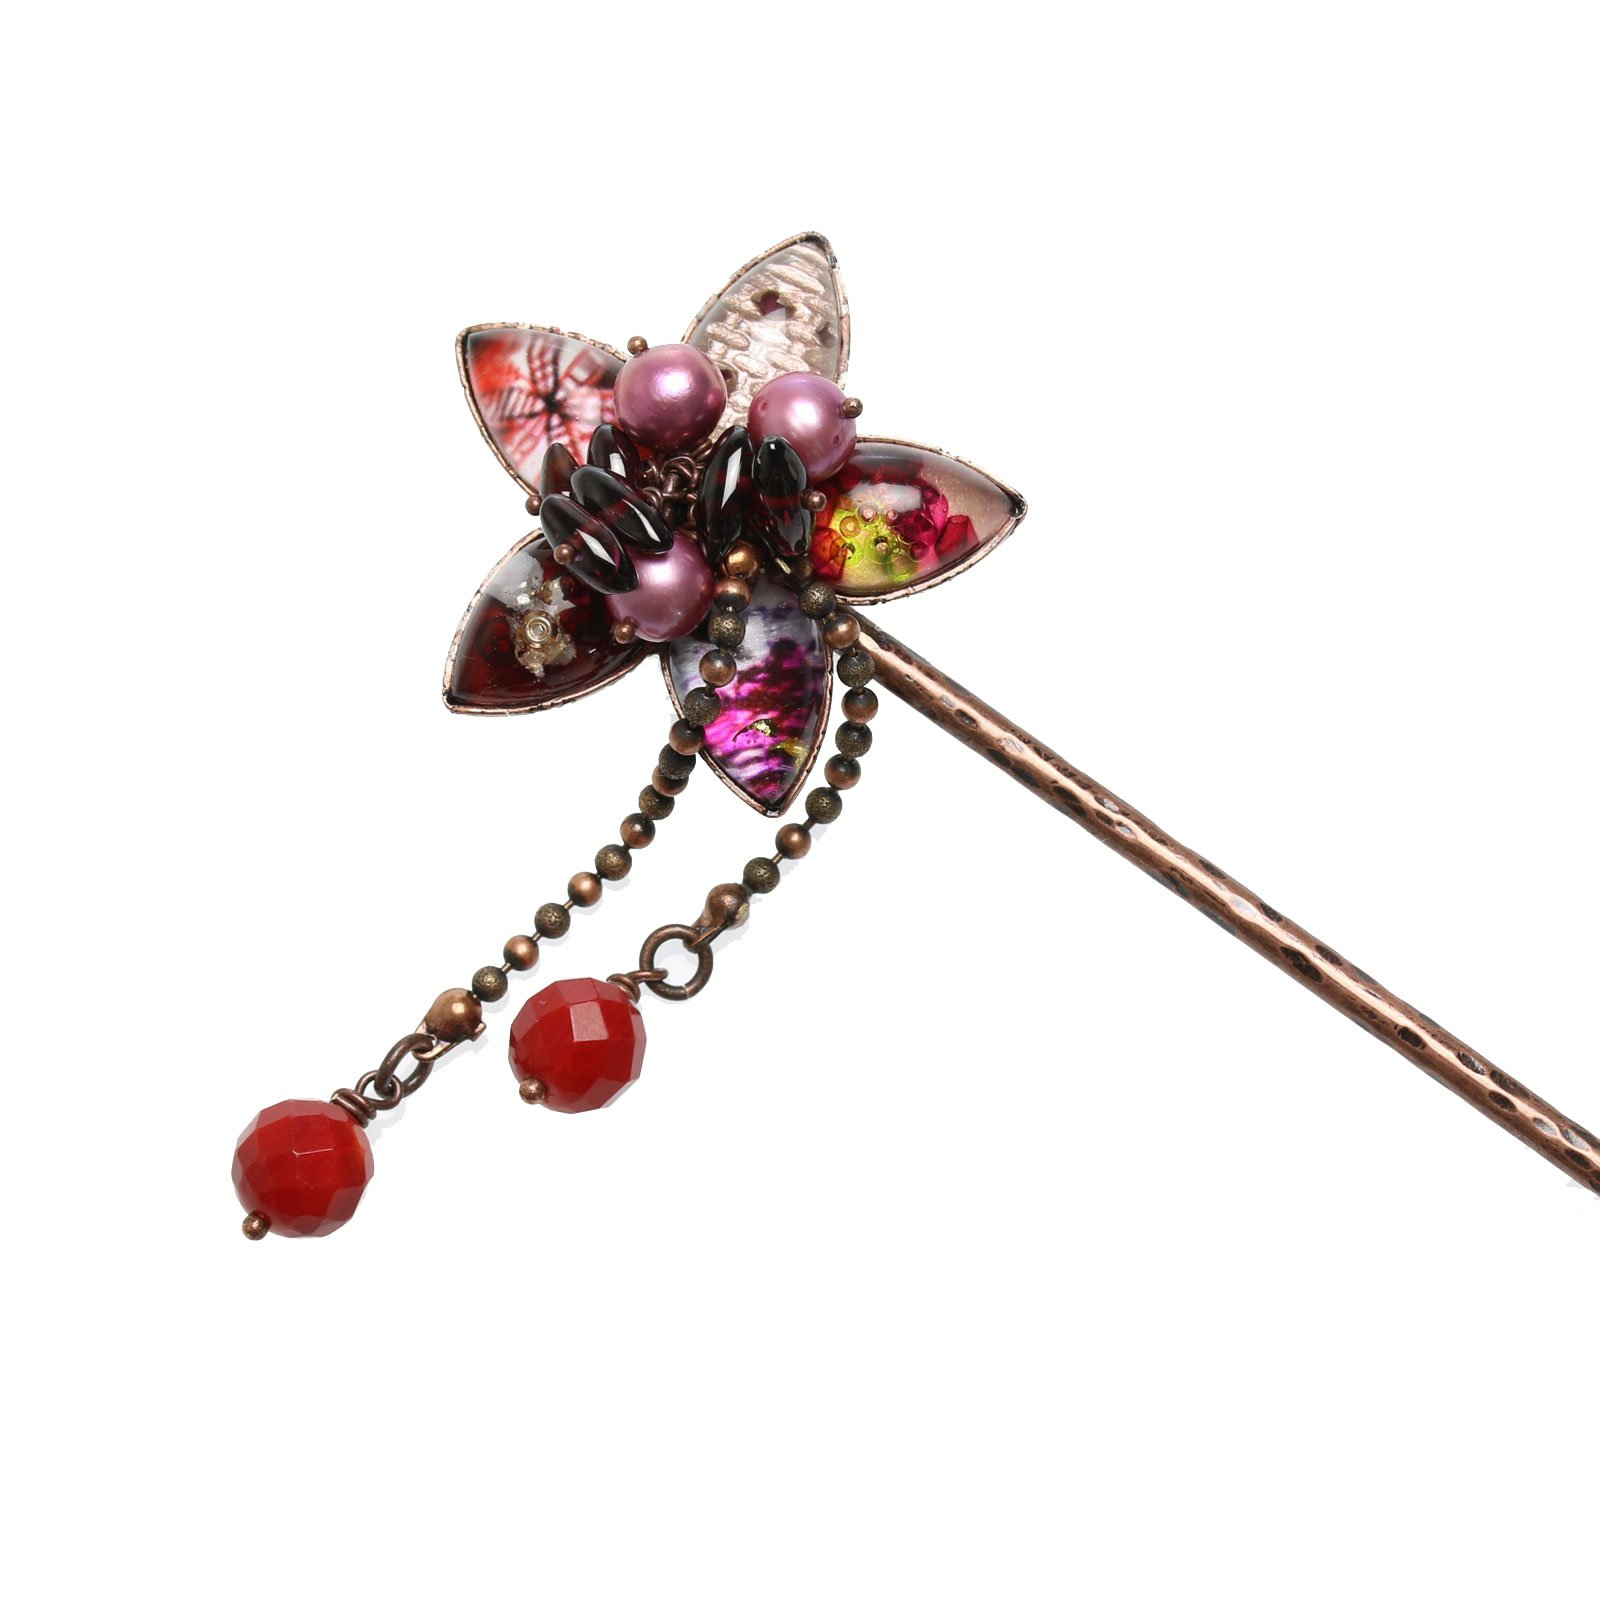 Tamarusan Hair Pin Flower Coral Freshwater Pearl Garnet One Flower Inserted Pink Red Resin